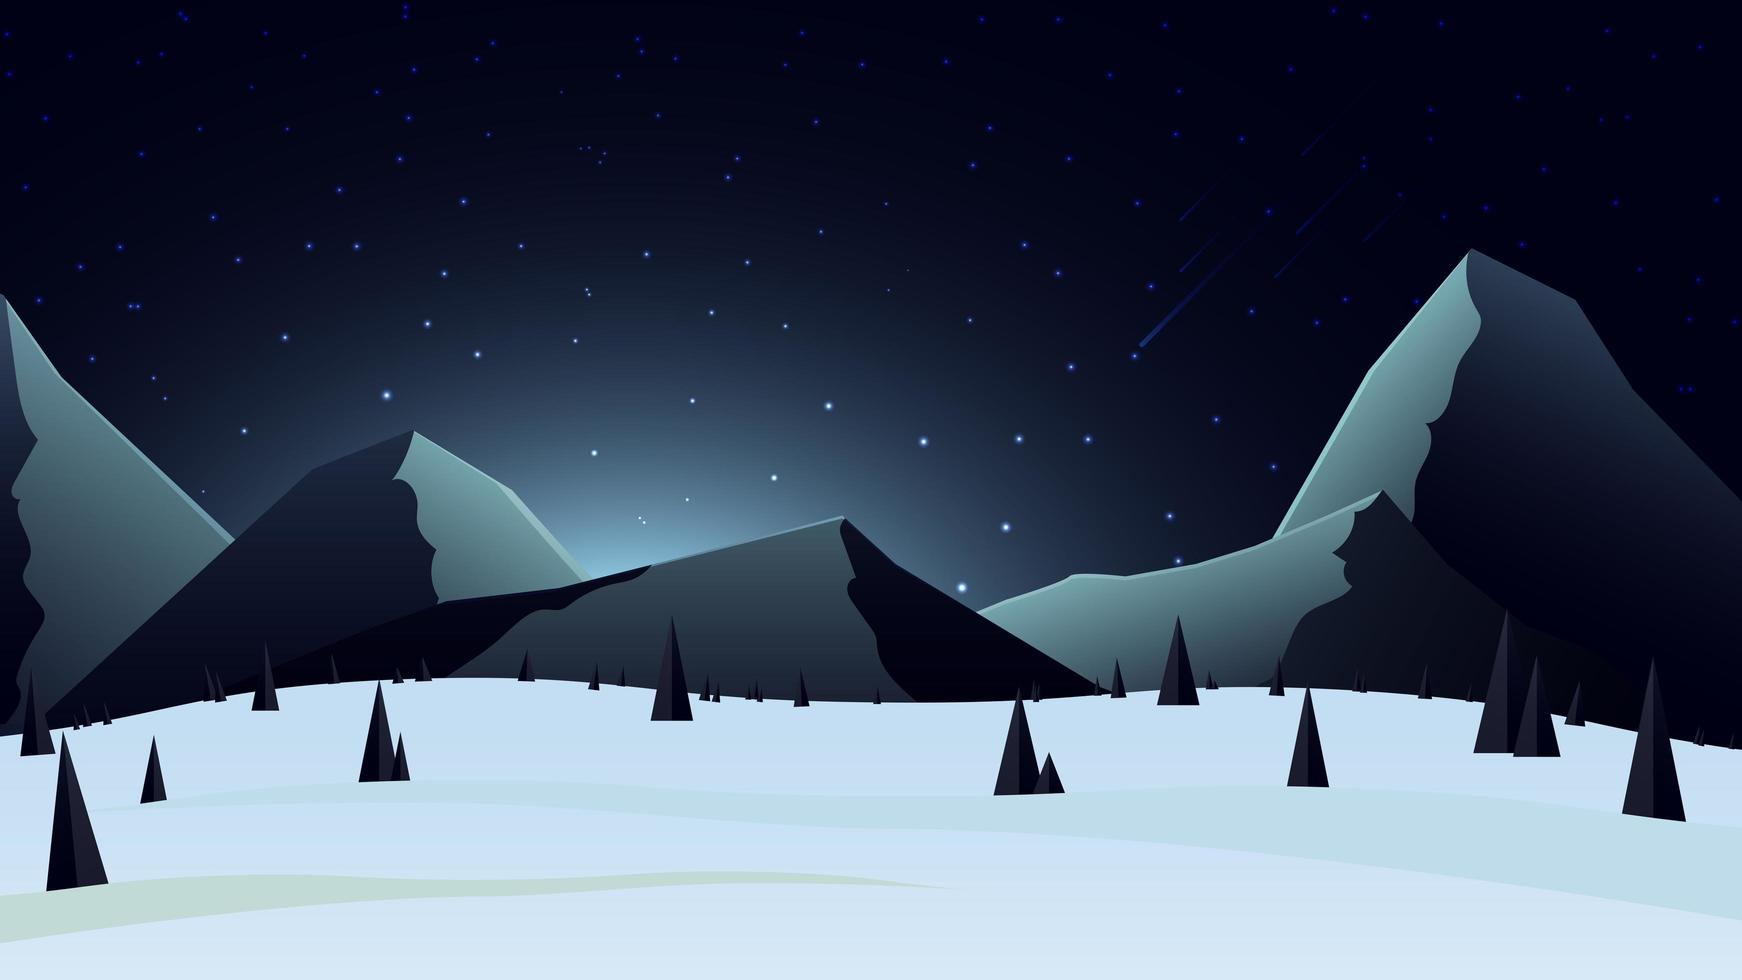 Winter landscape with snowy mountains on the horizon vector